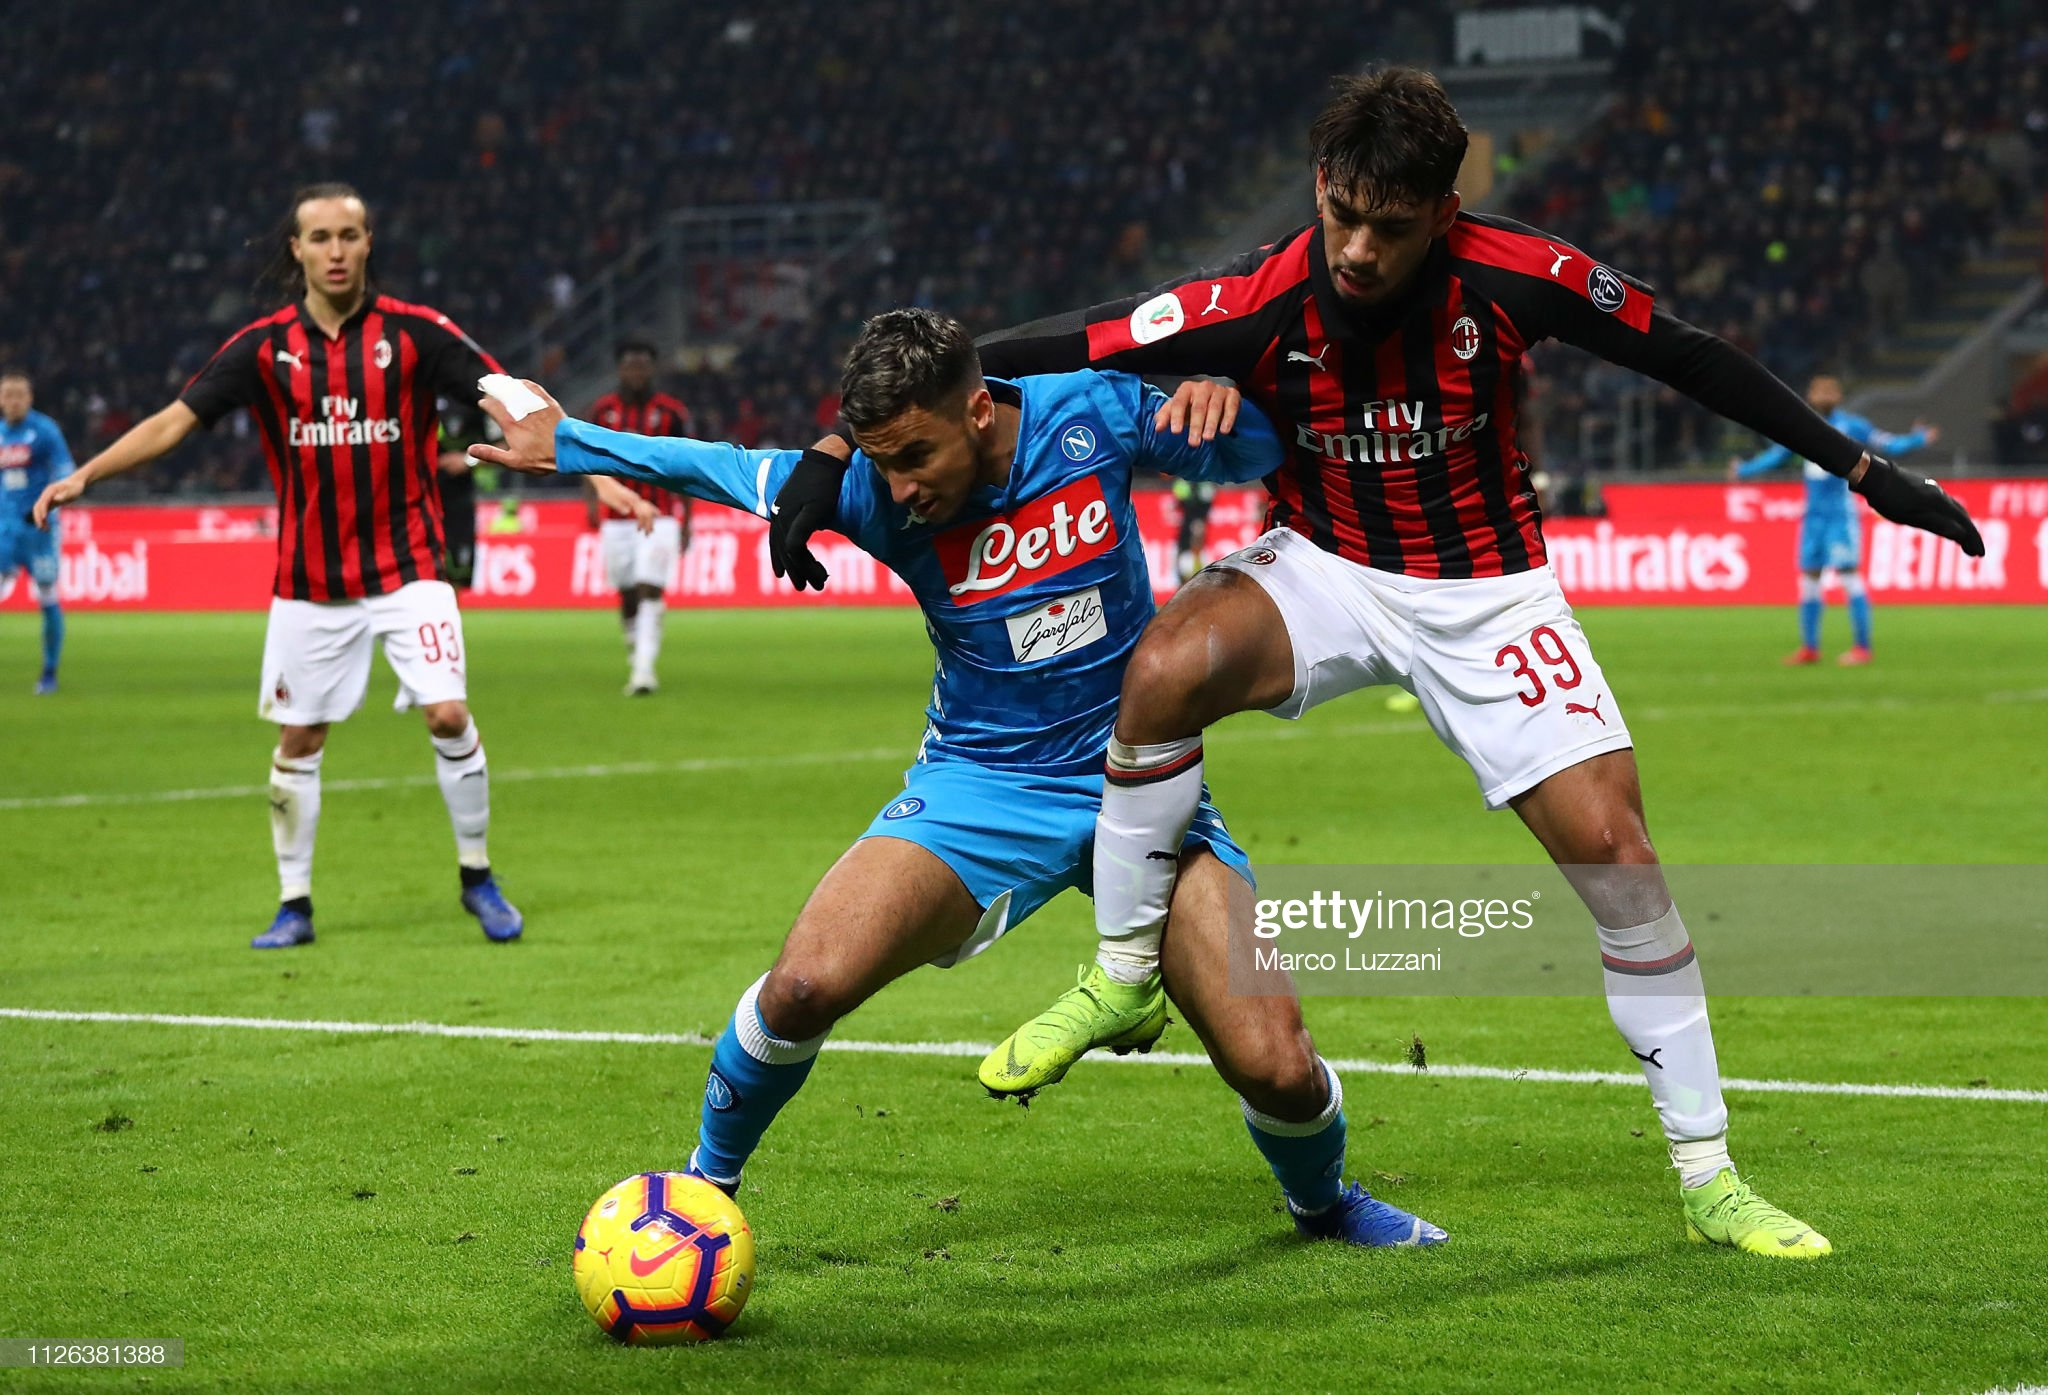 AC Milan v Napoli preview, prediction and odds